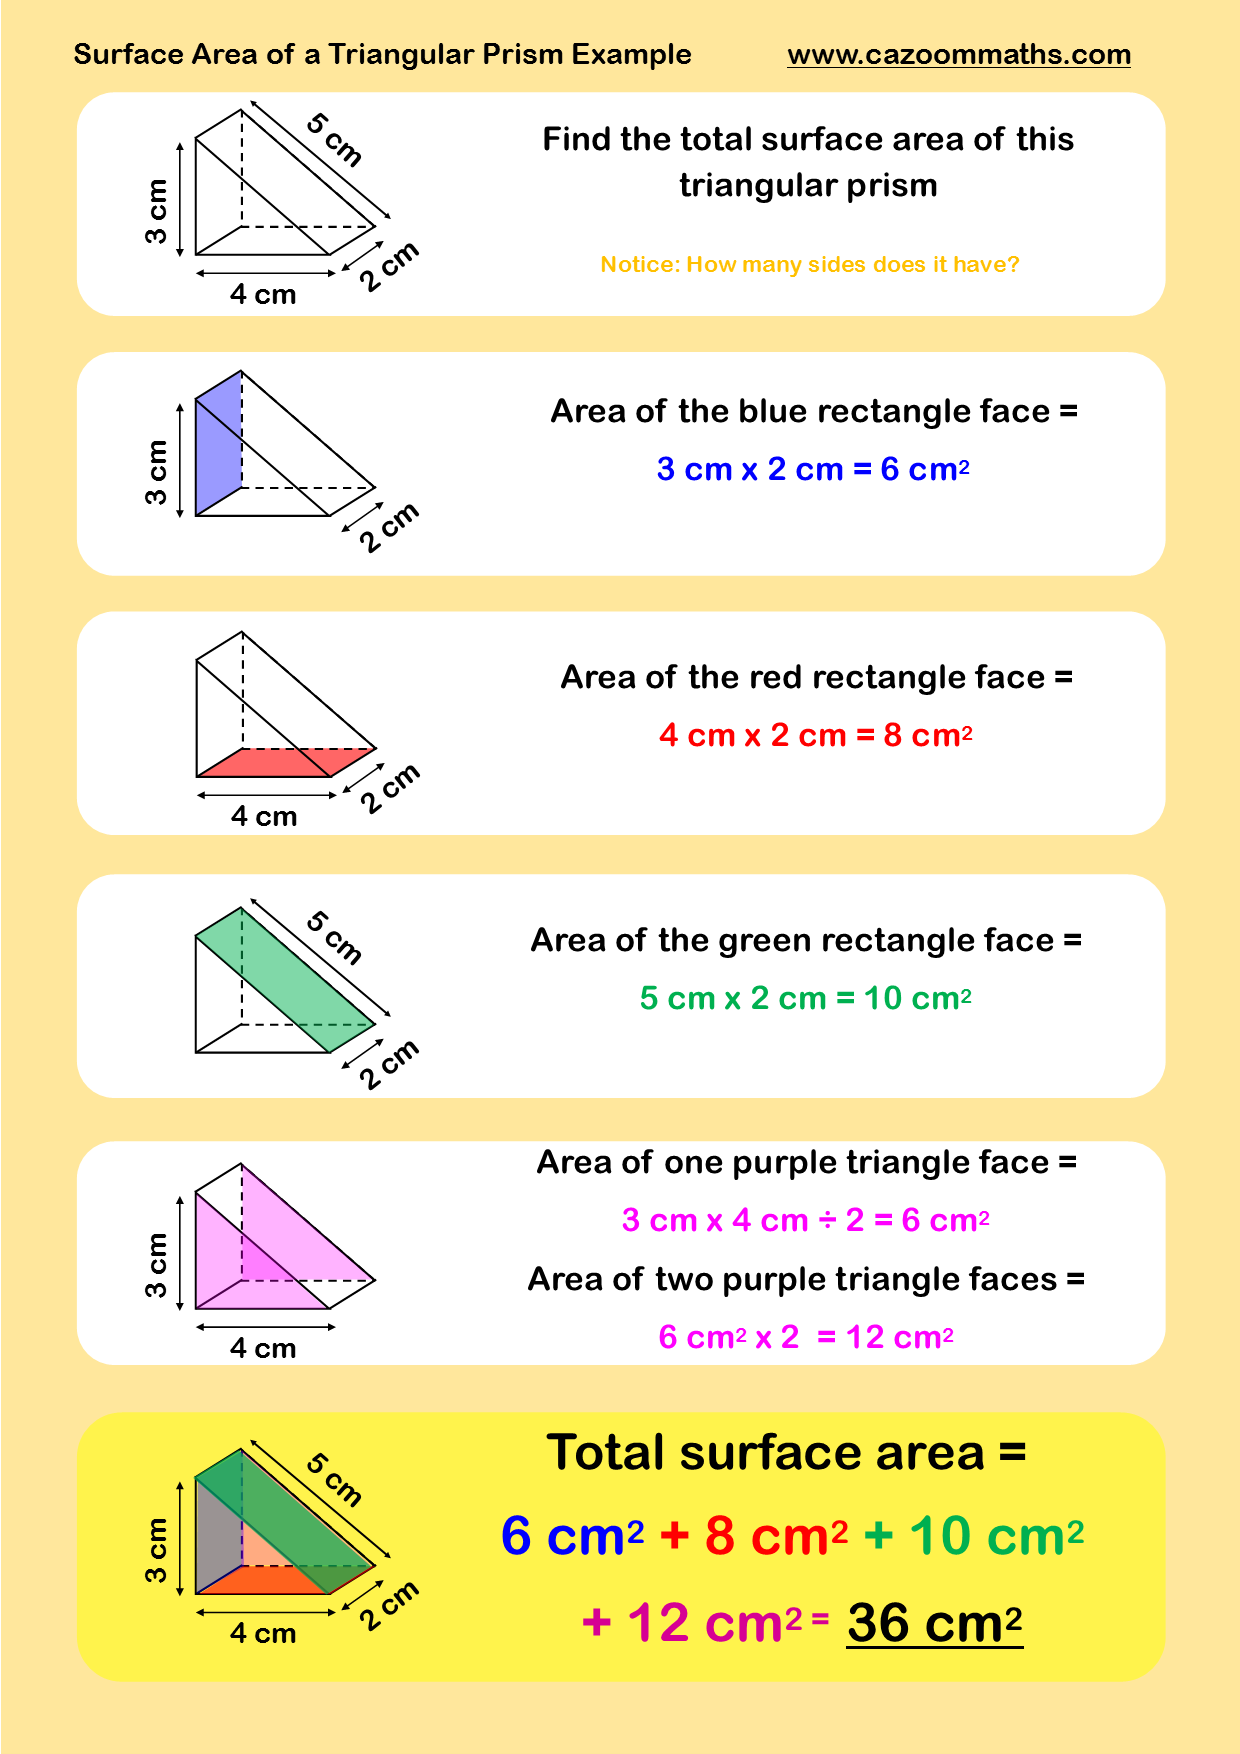 medium resolution of Surface Area of a Triangular Prism Example   Math practice worksheets